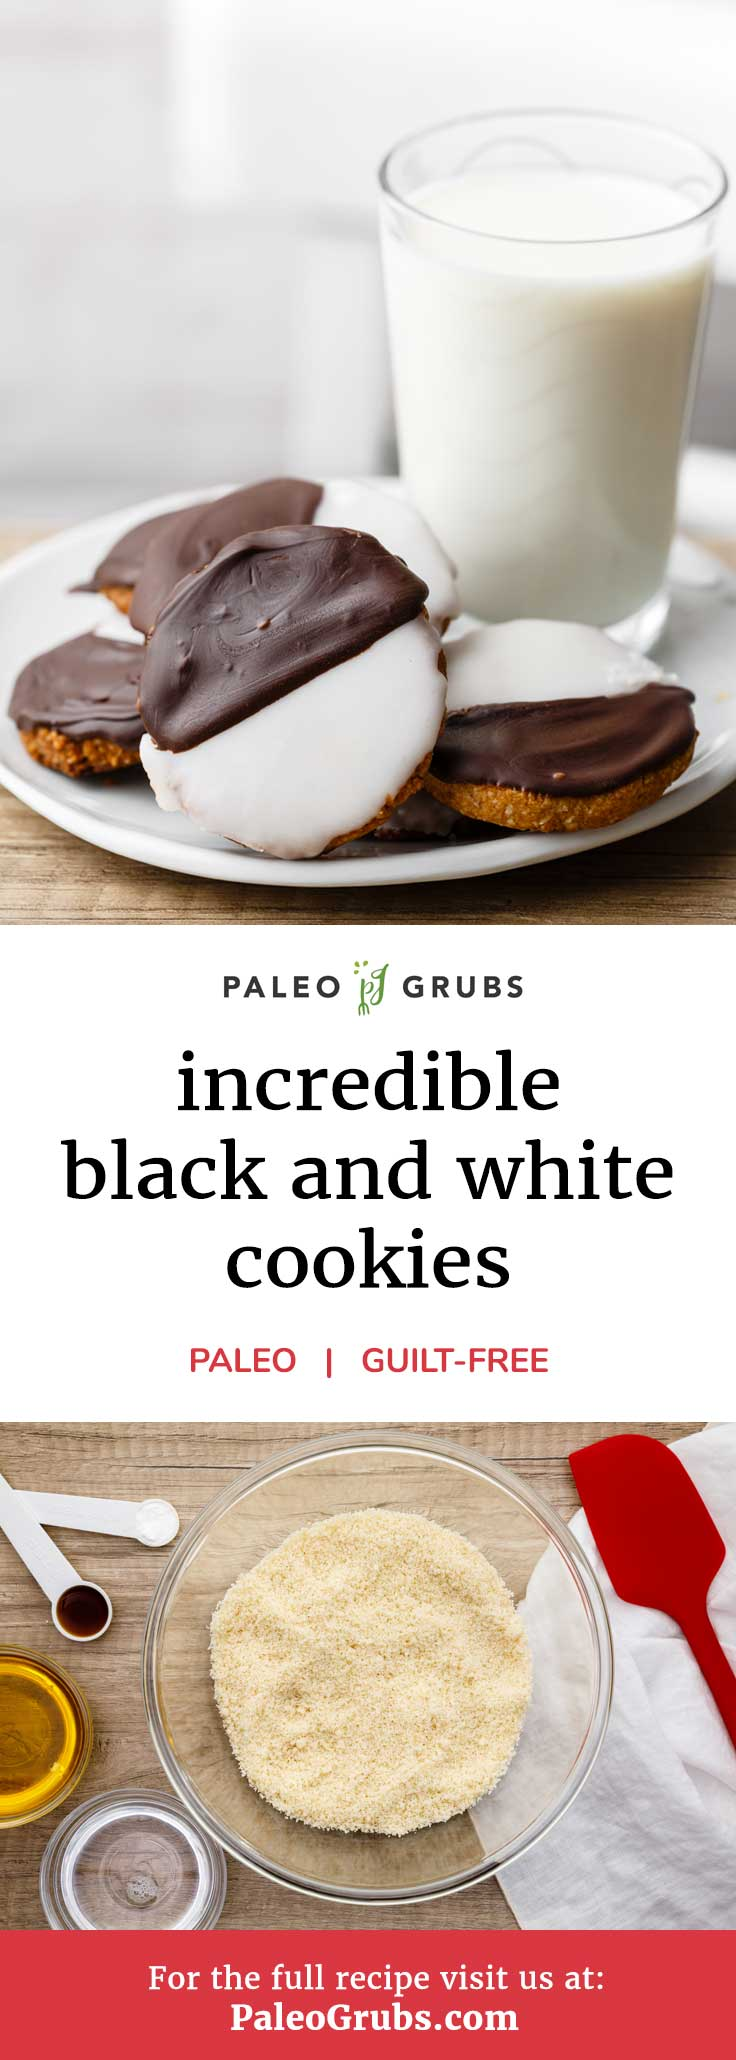 Are you craving something sweet? Imagine the delicious scent of home-baked cookies floating through the air. You may be shocked to discover that you can include cookies in a paleo lifestyle diet plan with just a few adjustments. The best part about this recipe is that most of the ingredients may already be in your pantry, so get baking.